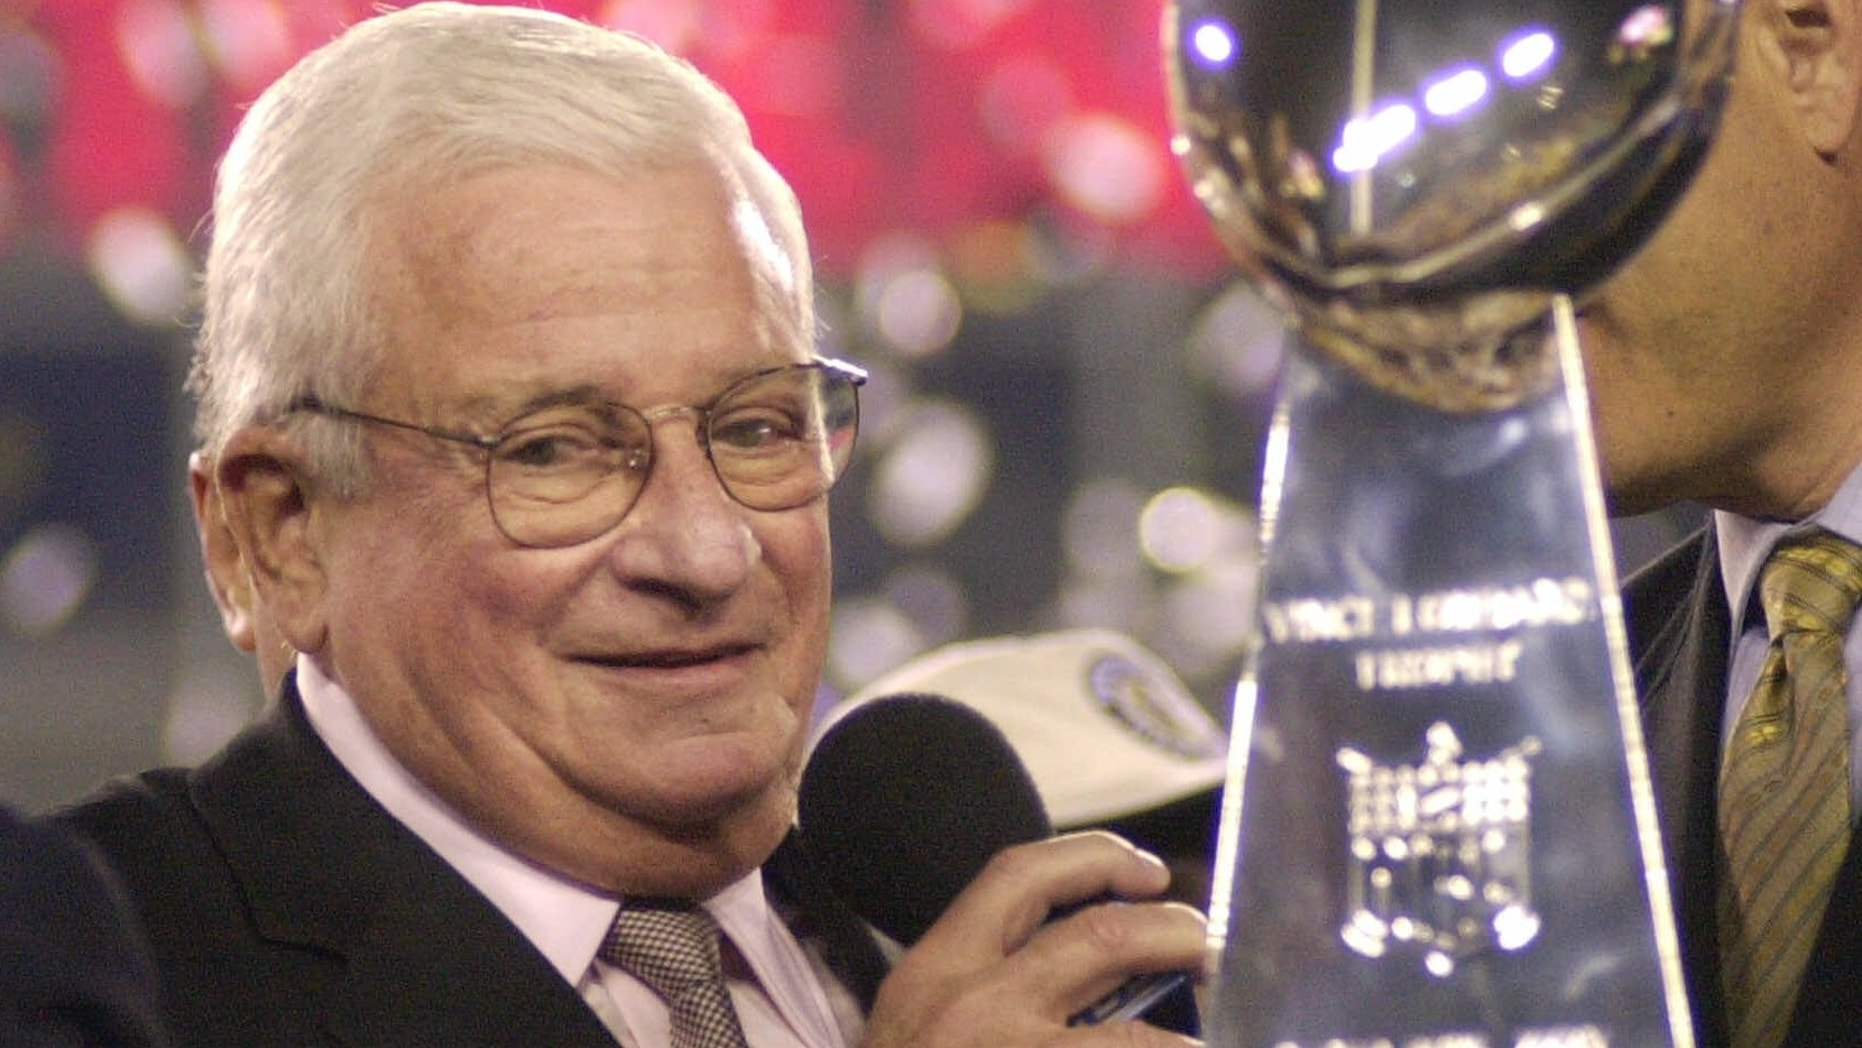 Baltimore Ravens owner Art Modell is seen with the Vince Lombardi Trophy after the Ravens beat the New York Giants 34-7 in Super Bowl XXXV.